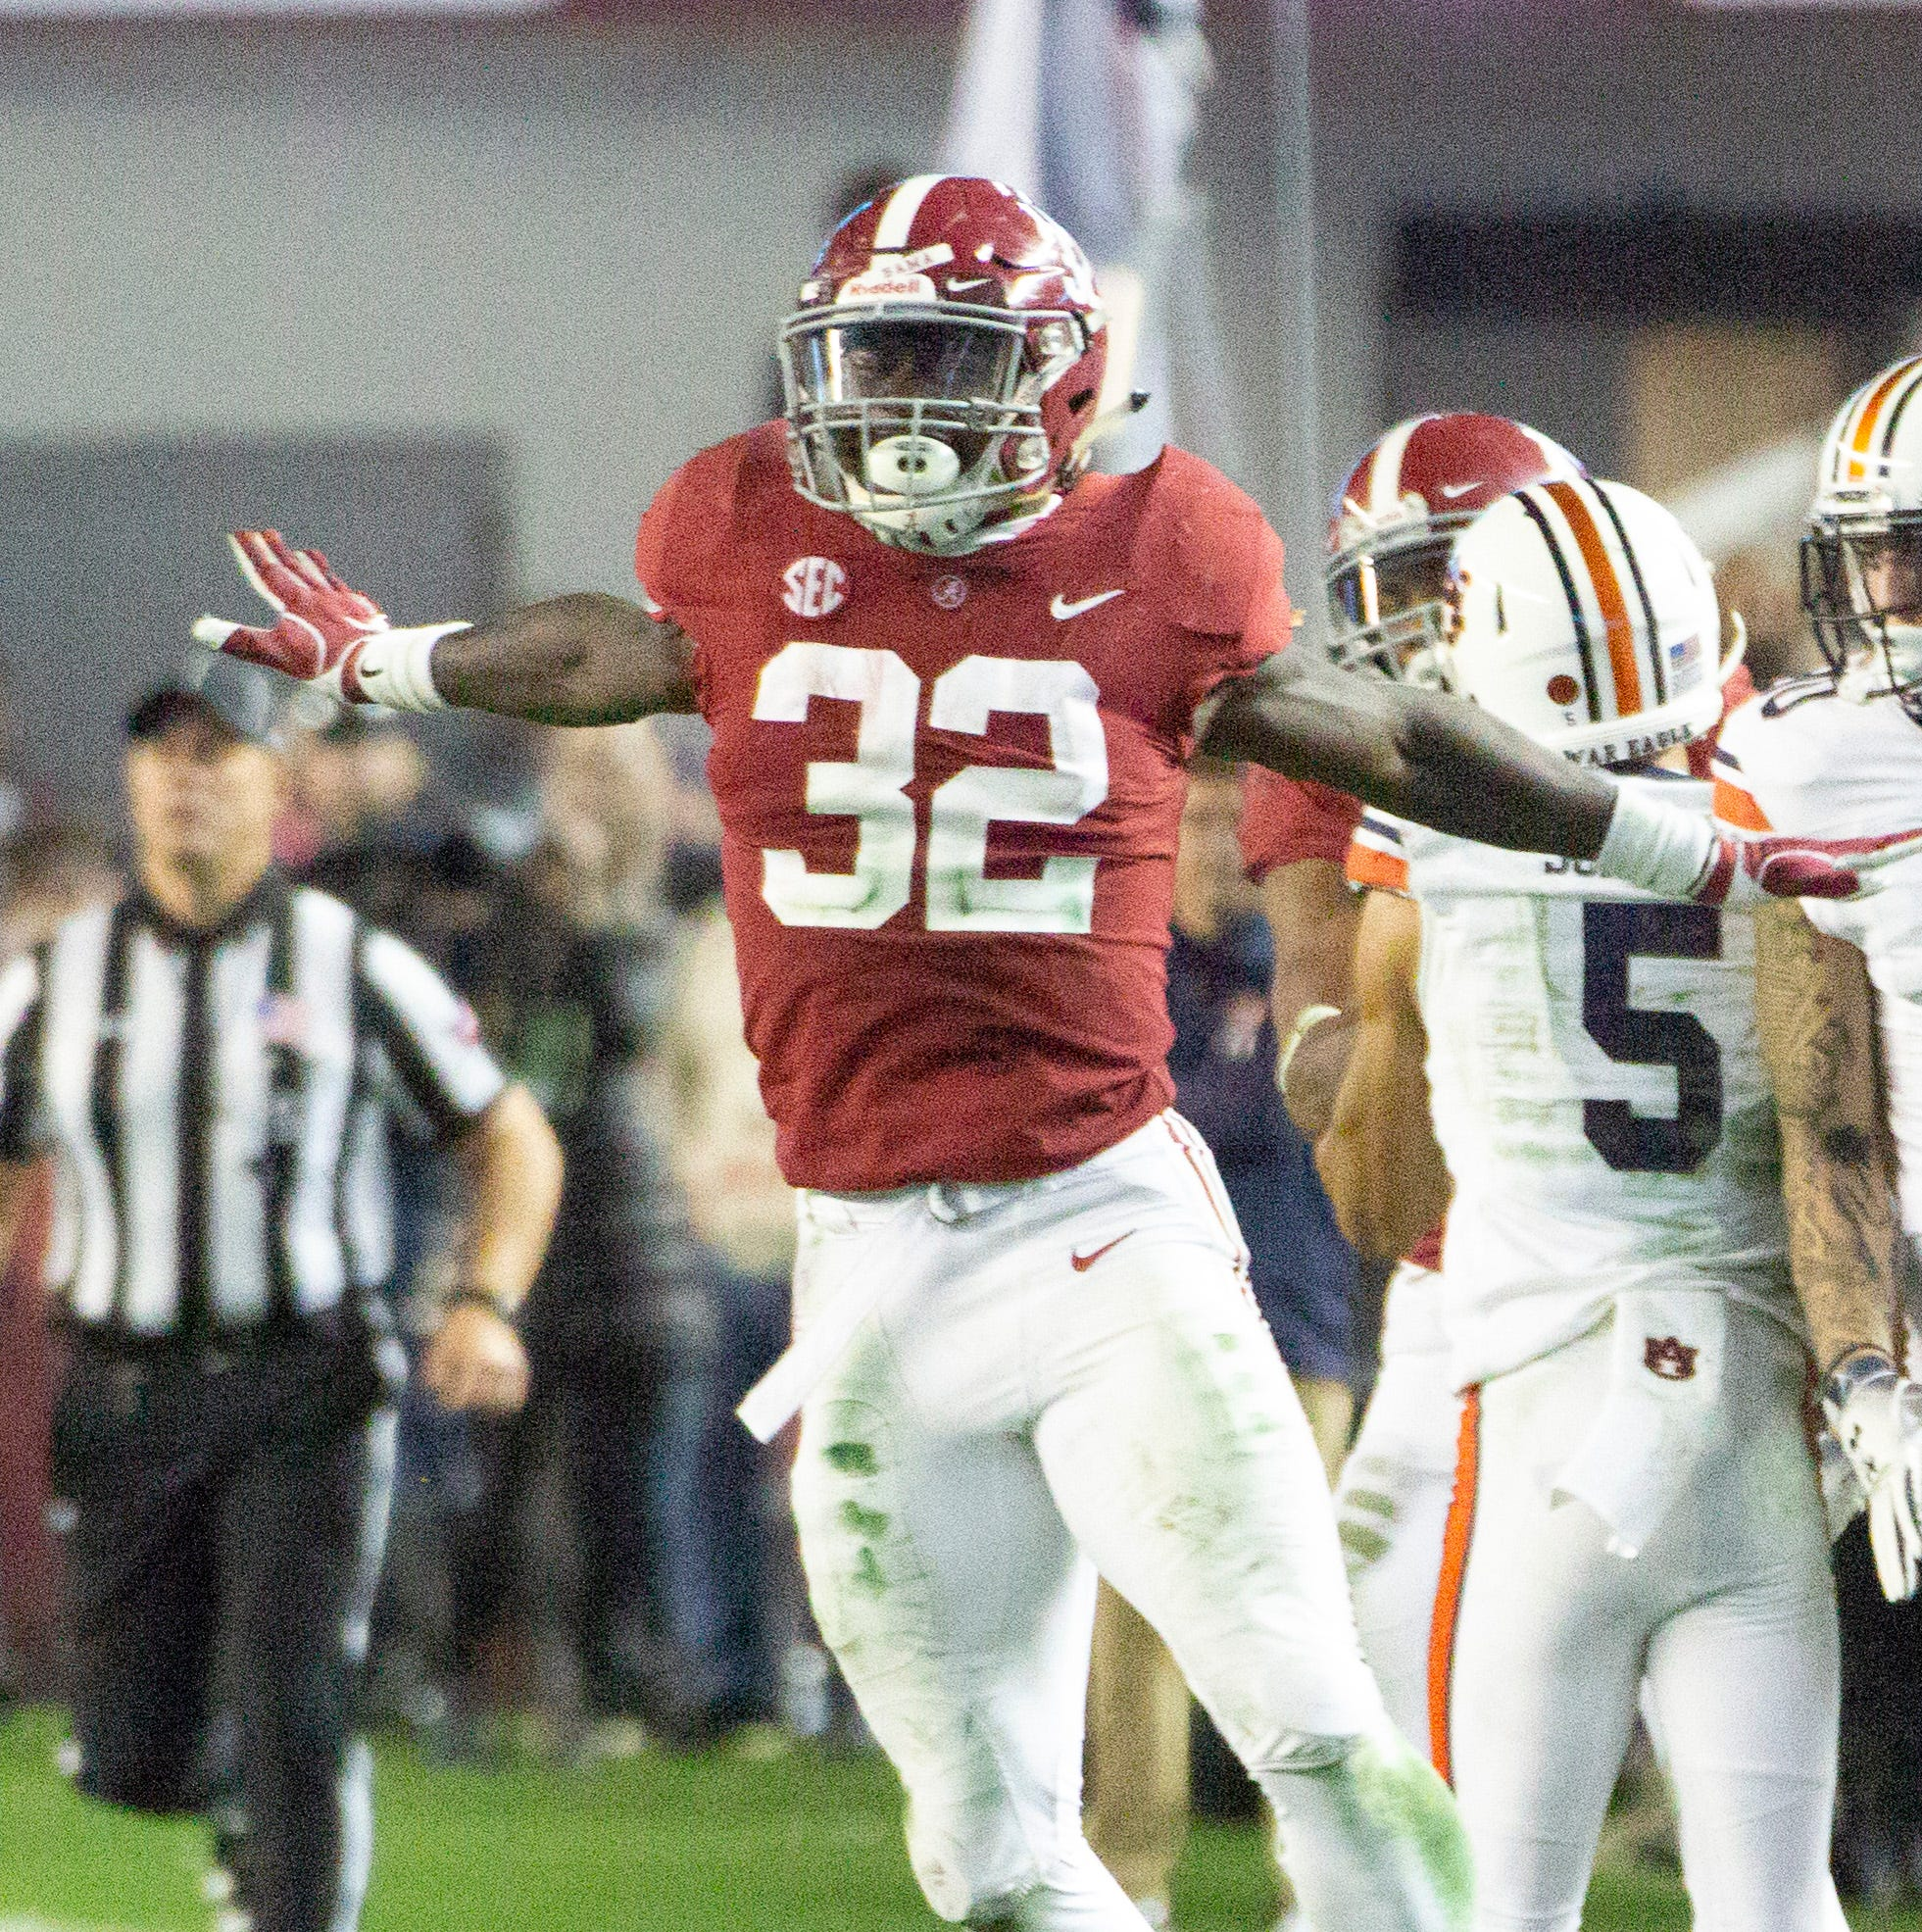 Dylan Moses excited, ready to take over as Alabama's next Mike LB